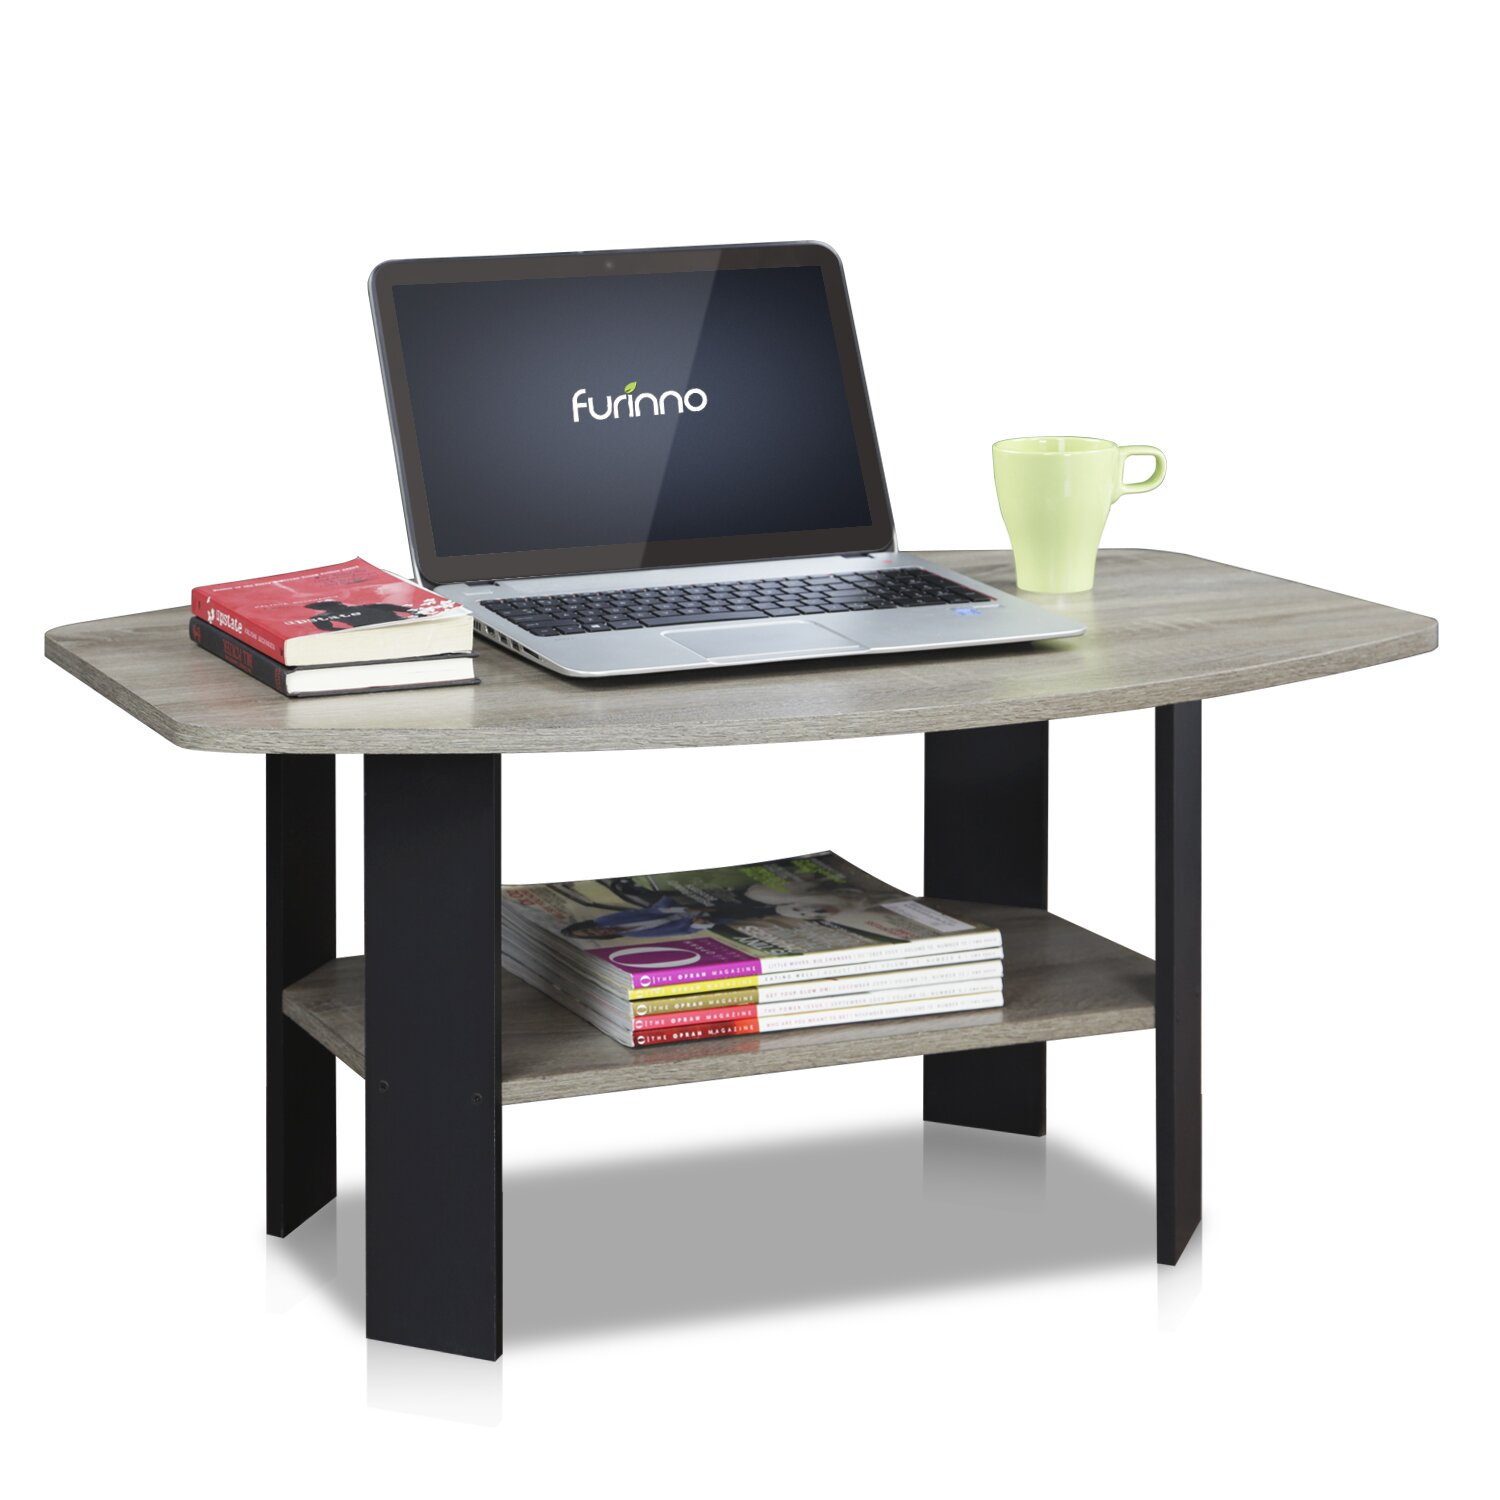 Simple Coffee Table - Furinno Simple Coffee Table & Reviews Wayfair